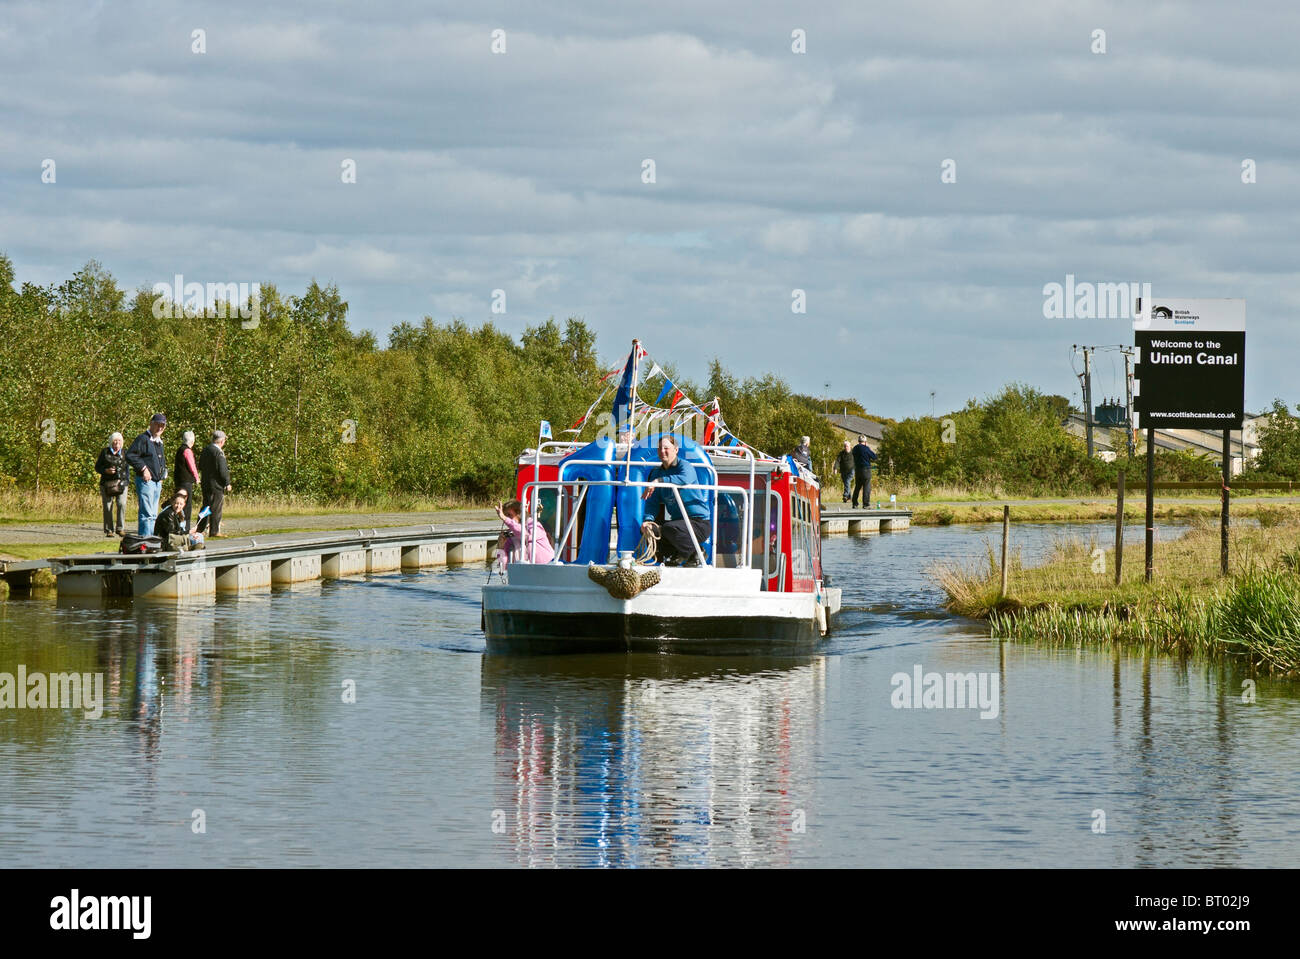 Canal boat arriving at the locks at the Union Canal near the junction with the Forth & Clyde Canal at Falkirk - Stock Image